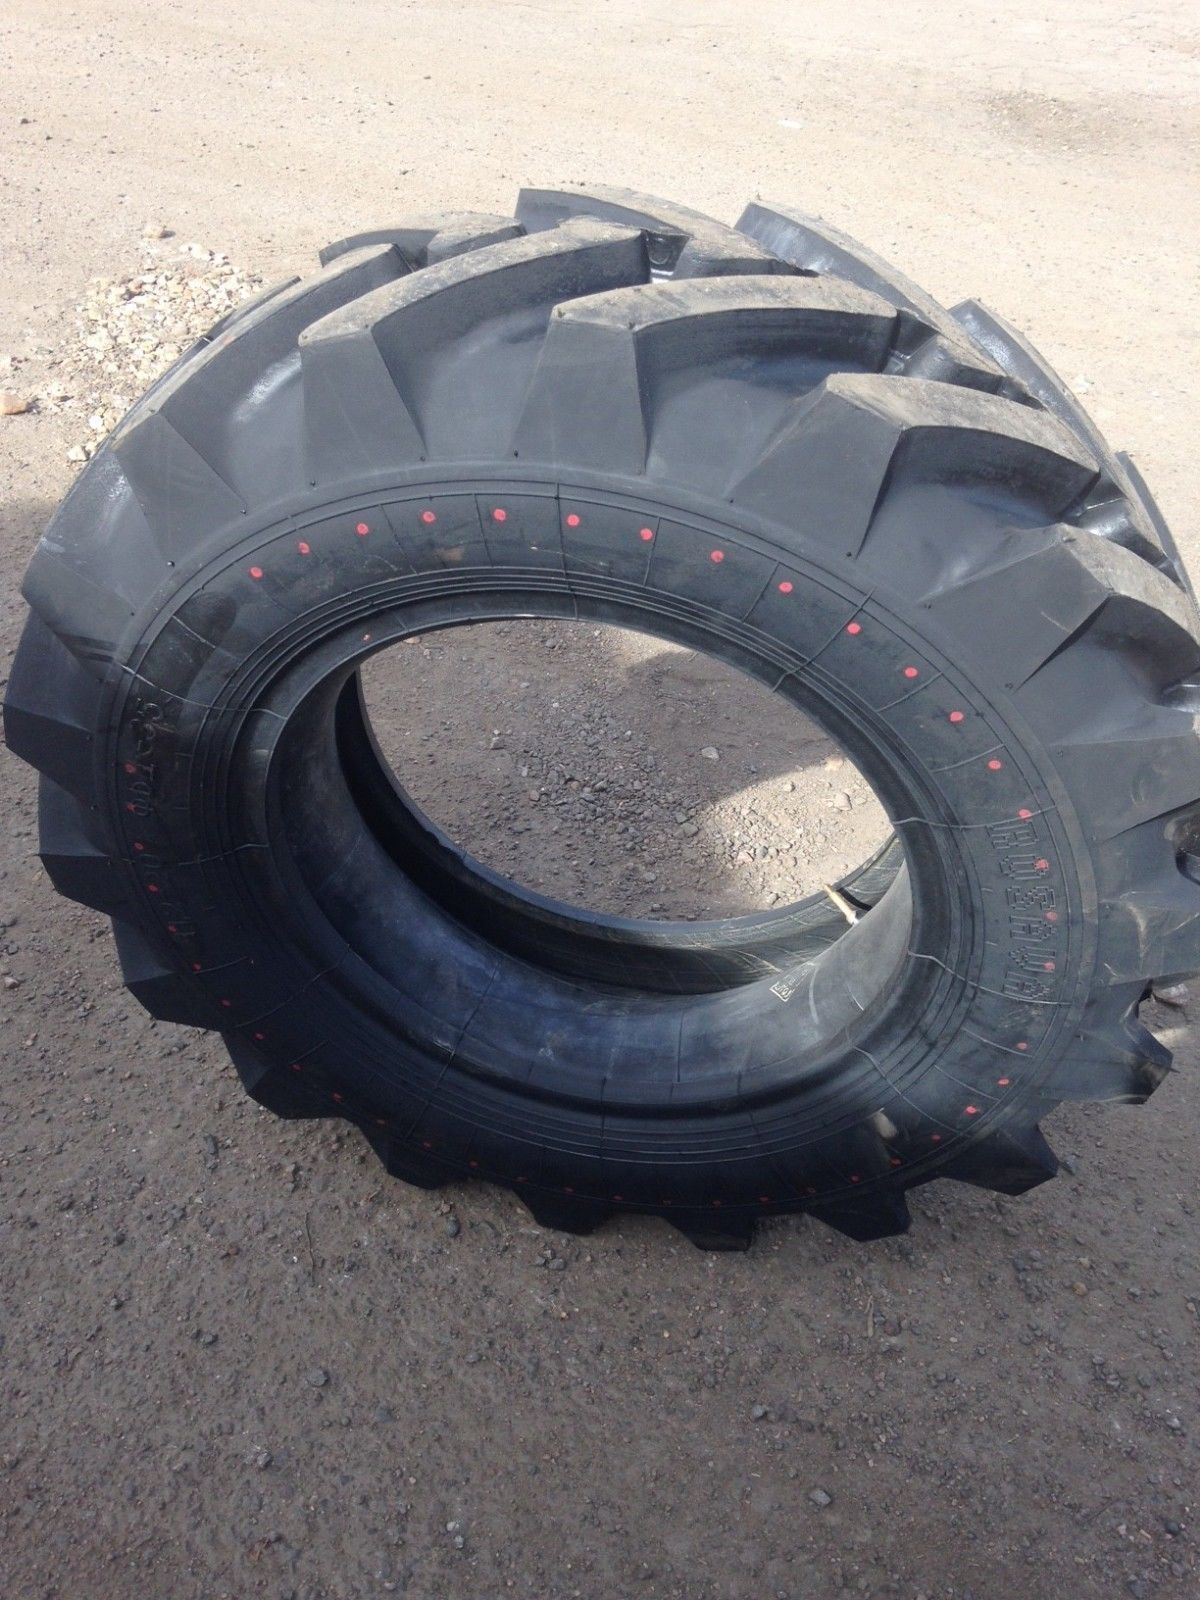 11 2x20 Tractor Tires 11 2 20 Tubes included